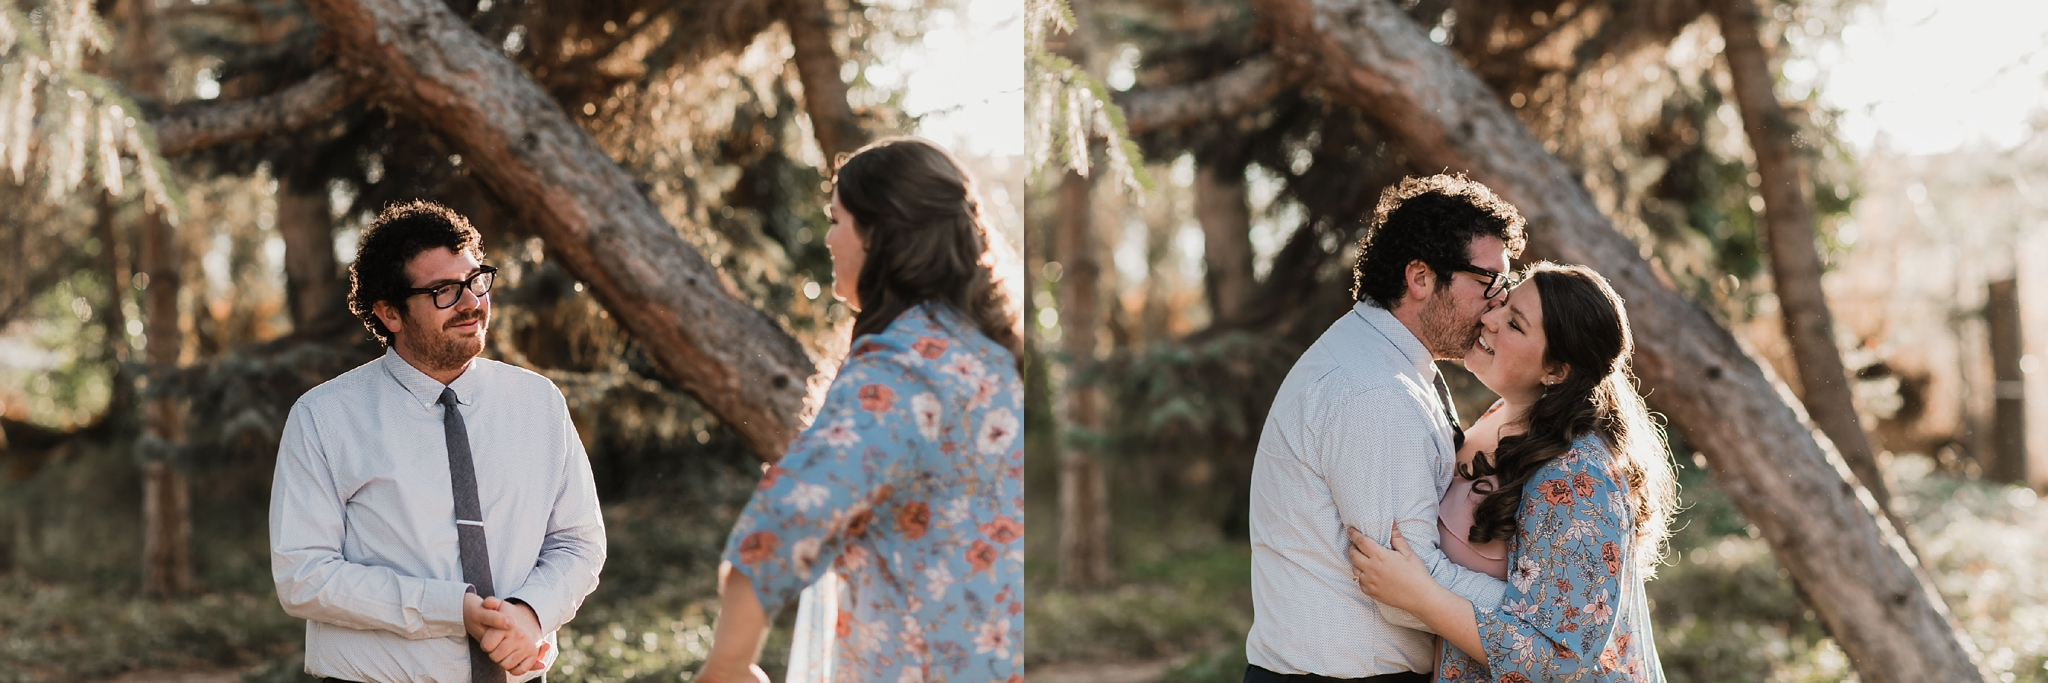 Alicia+lucia+photography+-+albuquerque+wedding+photographer+-+santa+fe+wedding+photography+-+new+mexico+wedding+photographer+-+new+mexico+engagement+-+los+poblanos+engagement+-+spring+engagement_0013.jpg